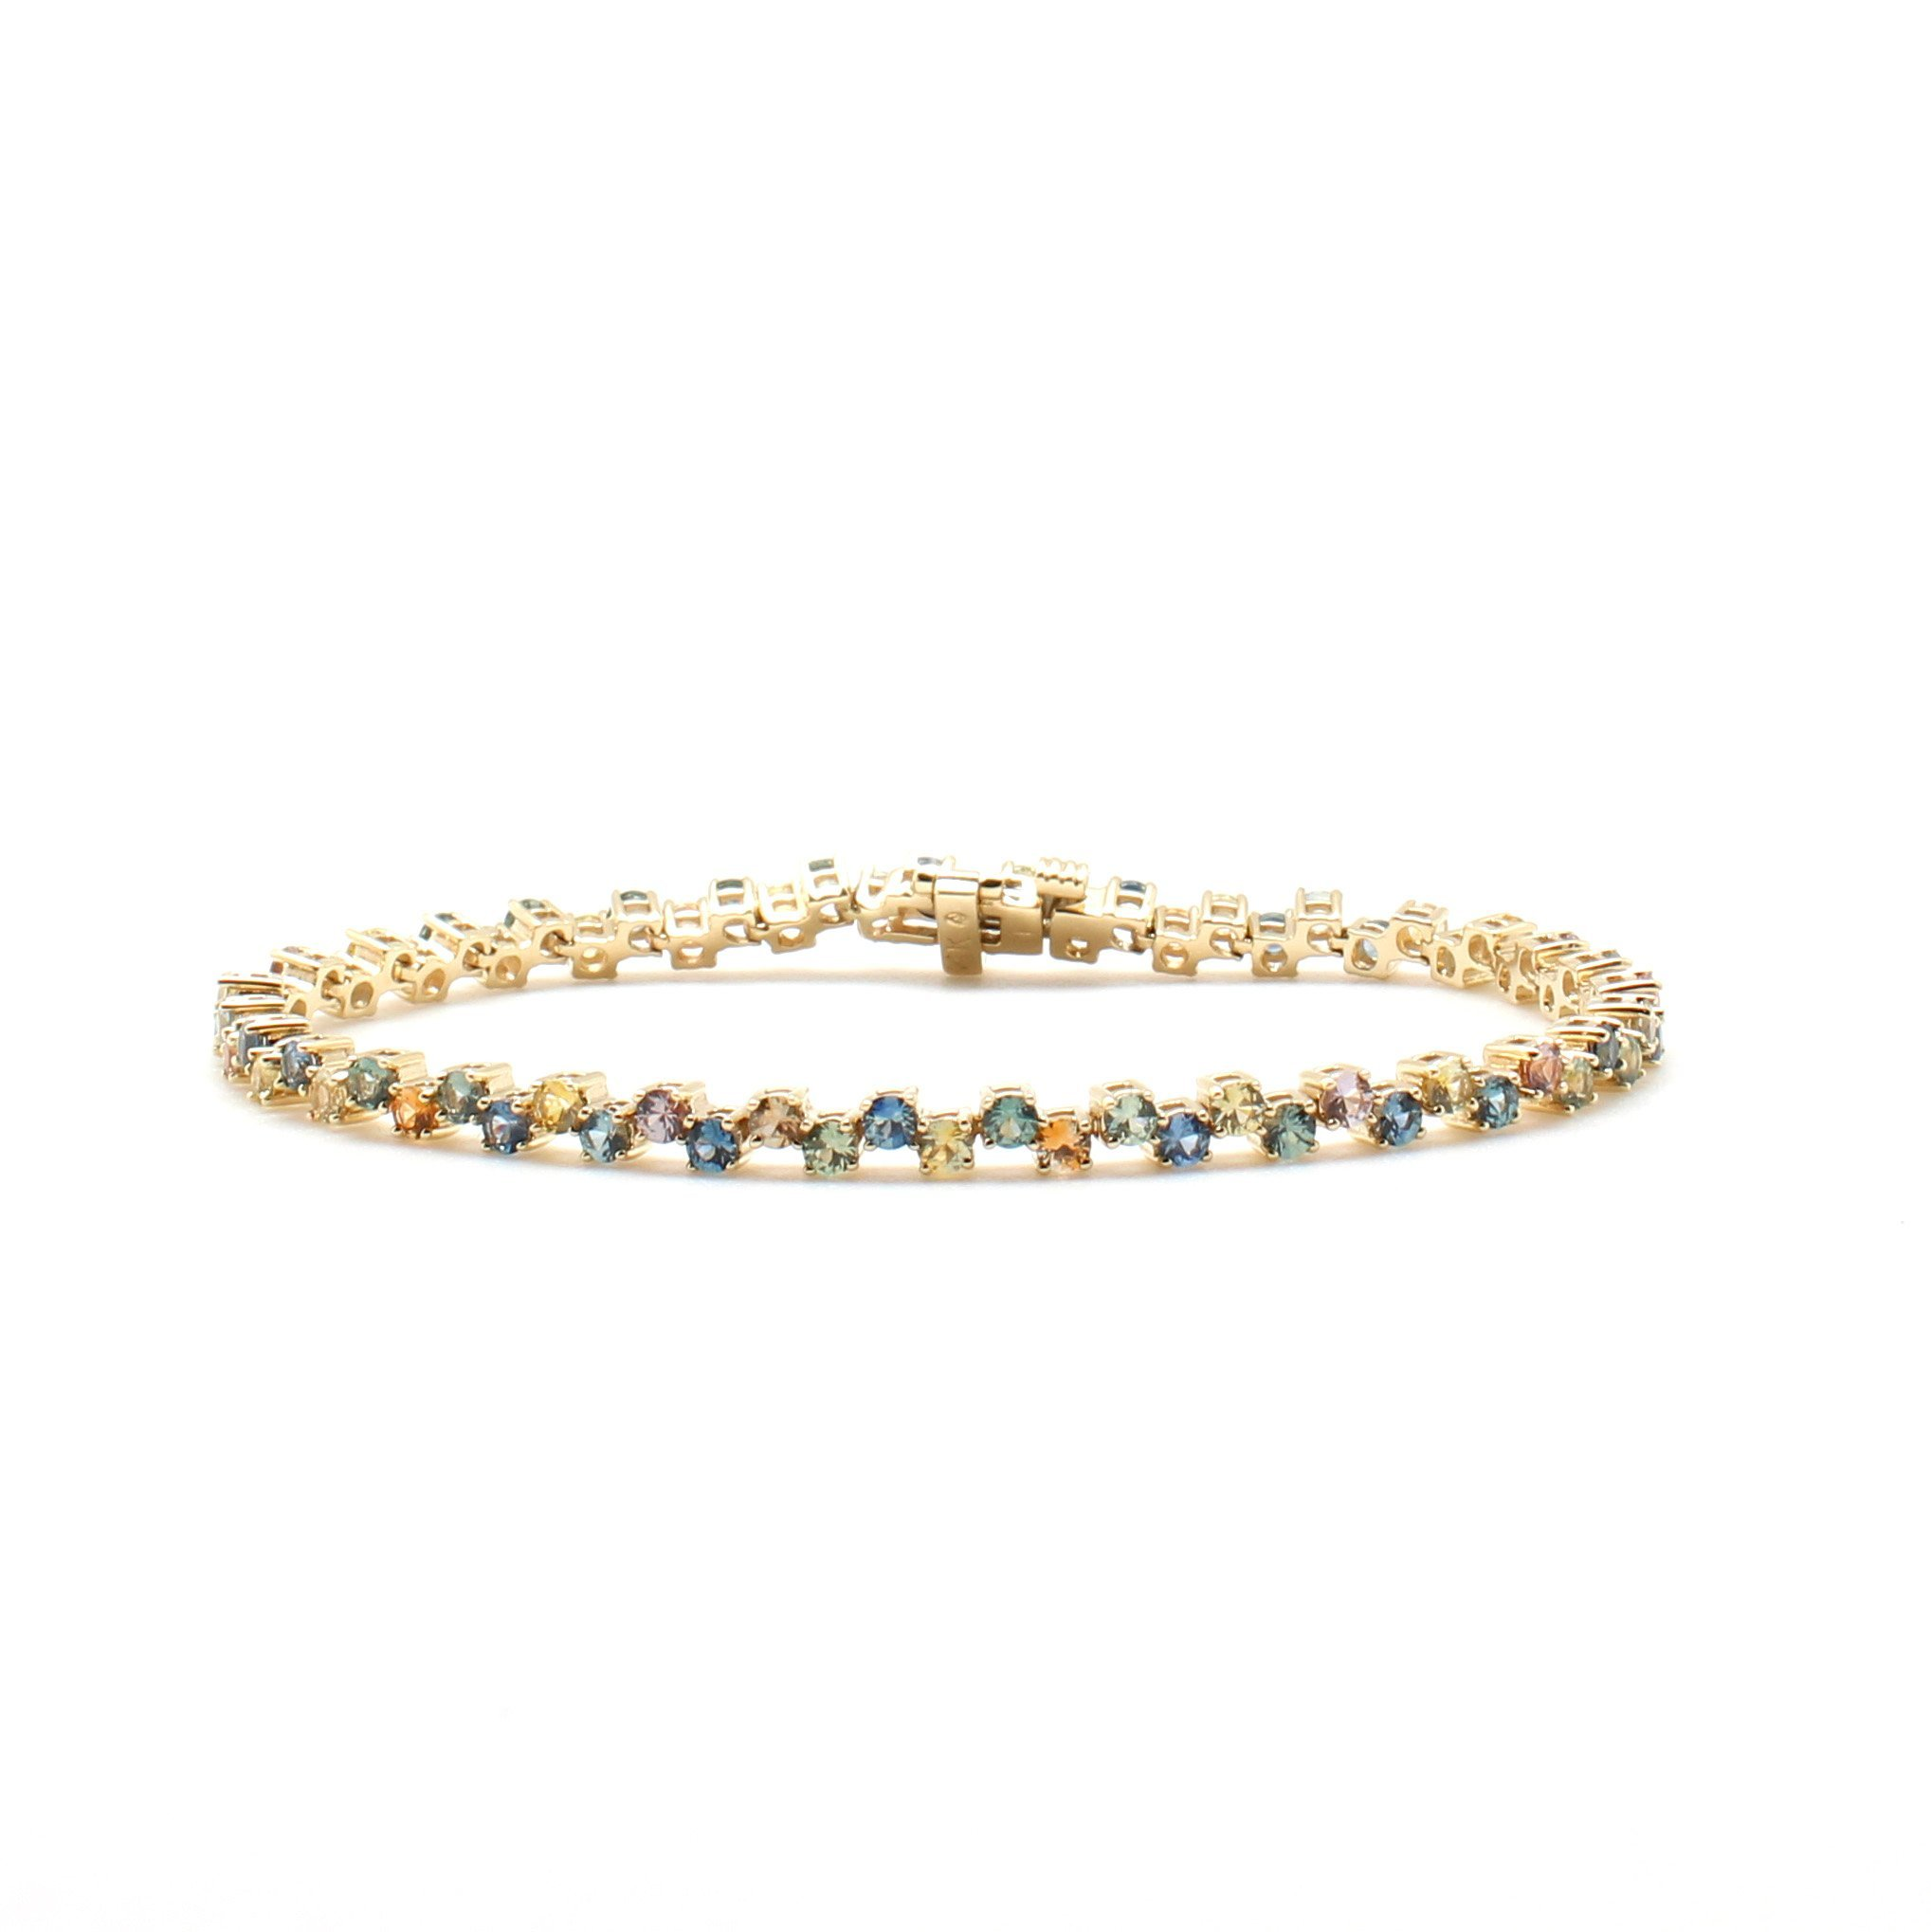 starlight london crown hires amp bracelet sterling of and links en sapphire silver ca